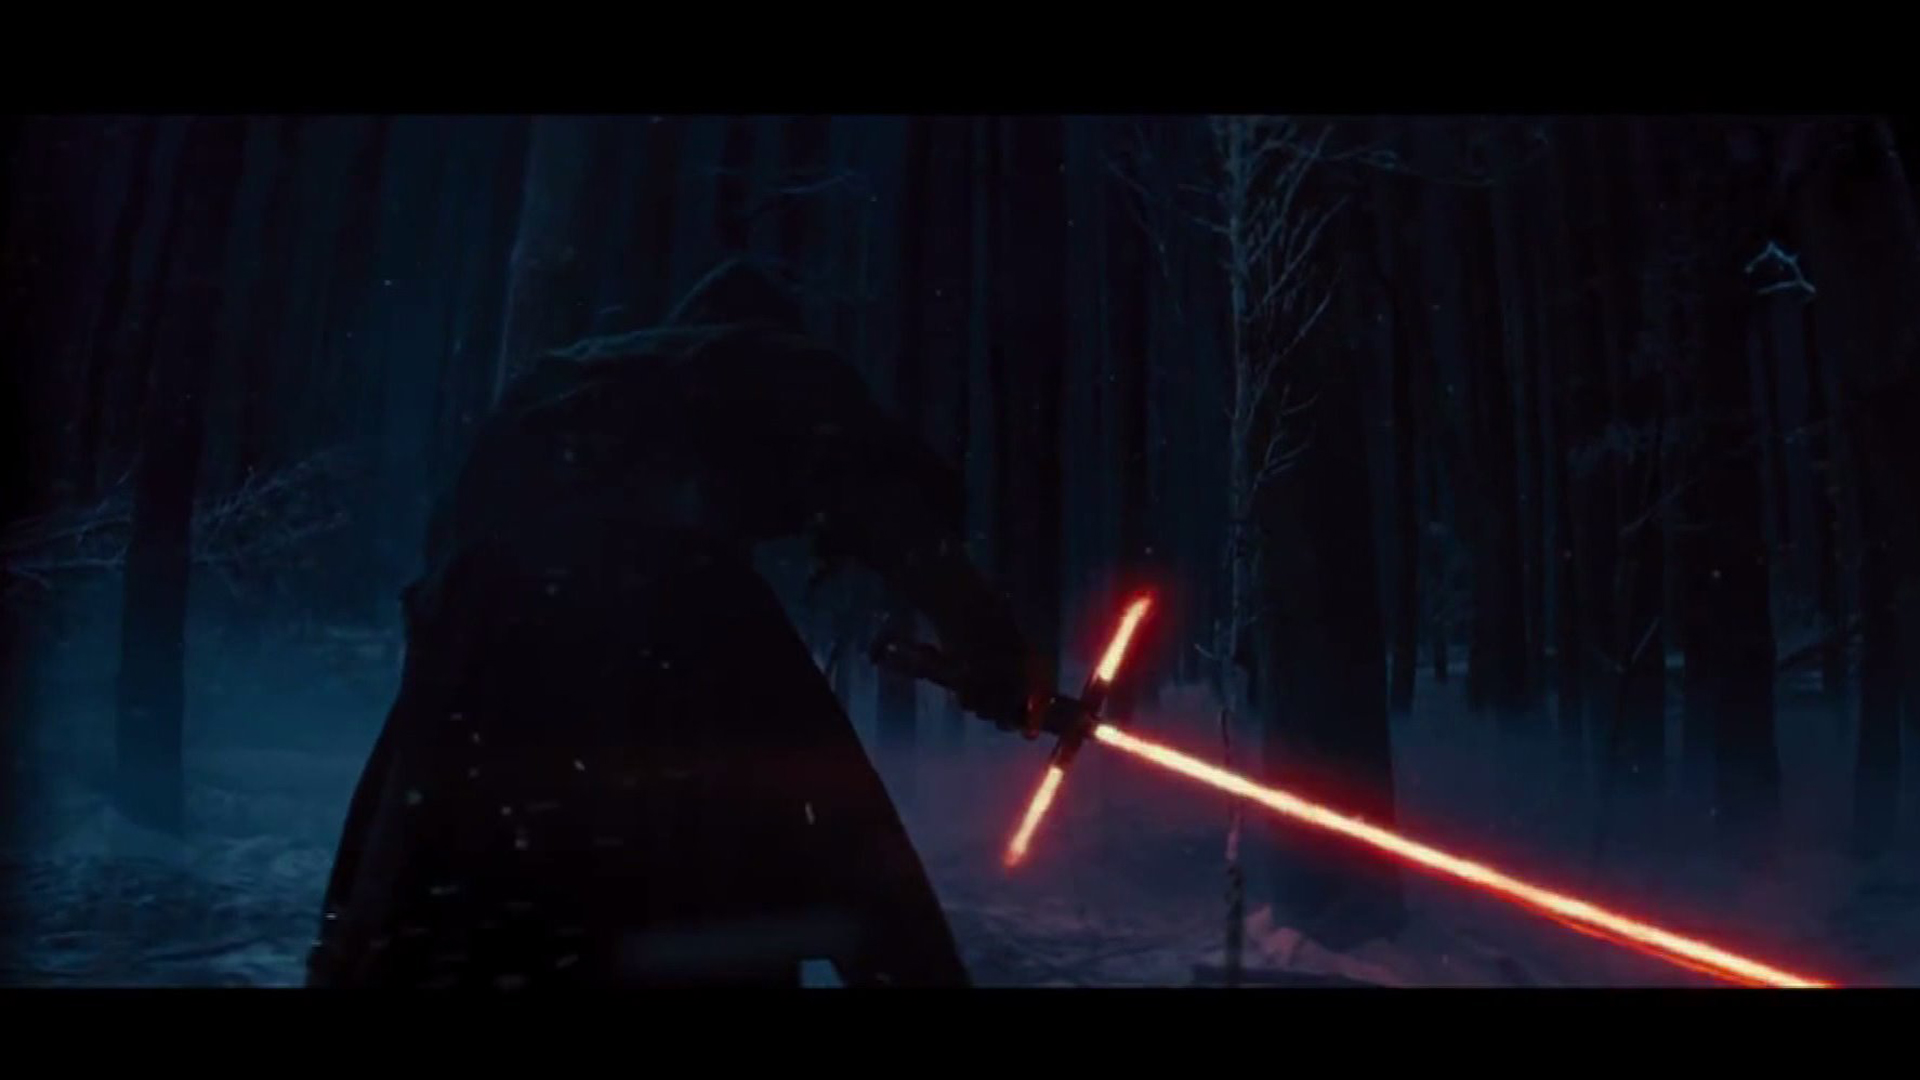 wallpapers of the new Star Wars film Here the trailer to Star Wars 1920x1080